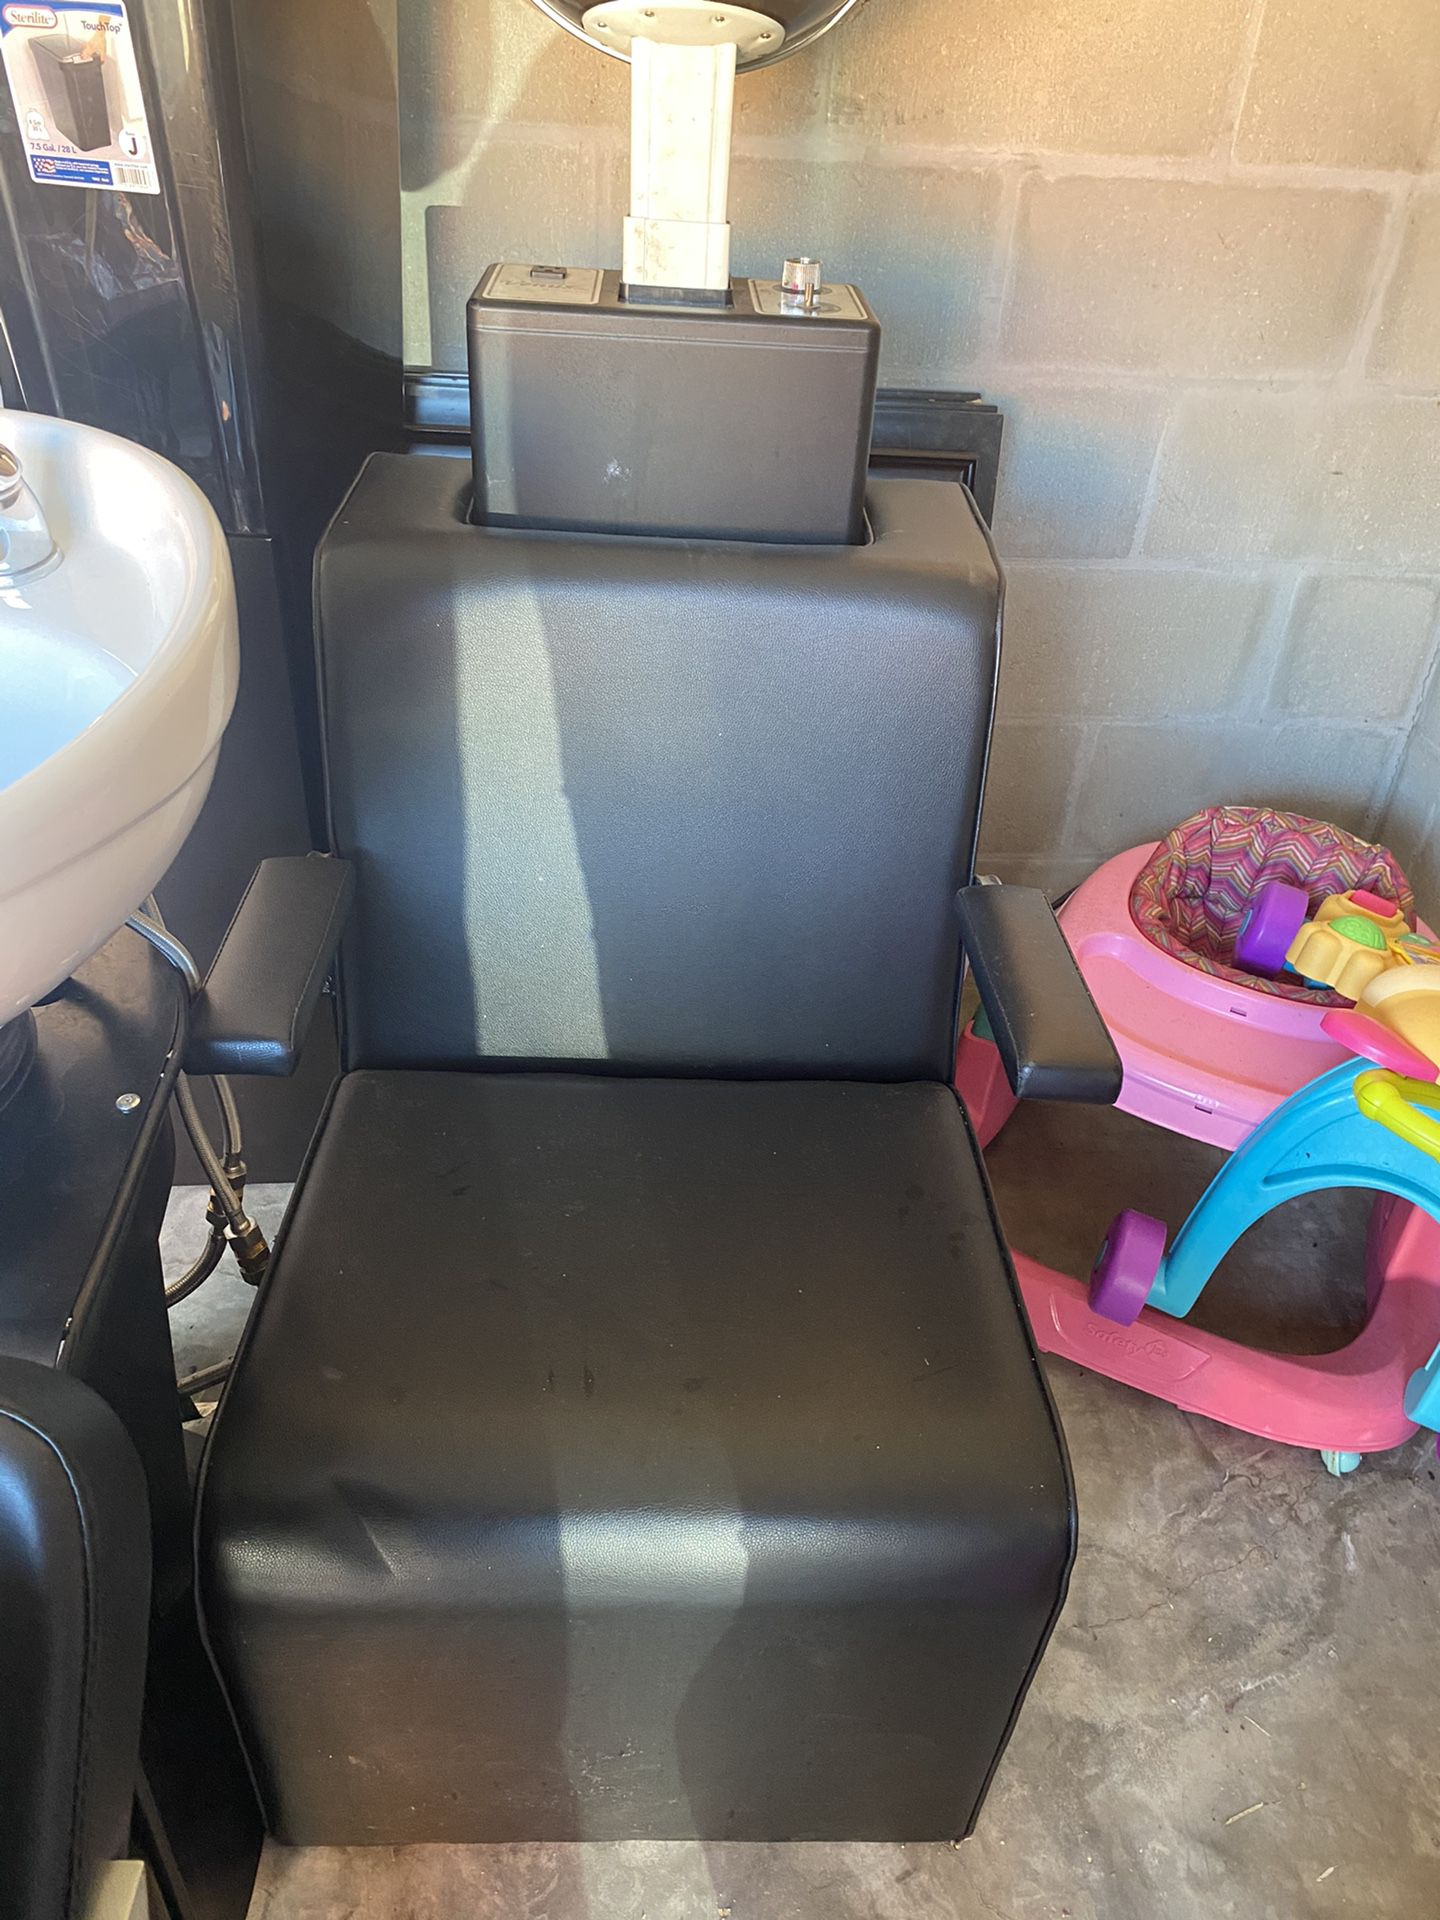 Chair and dryer included